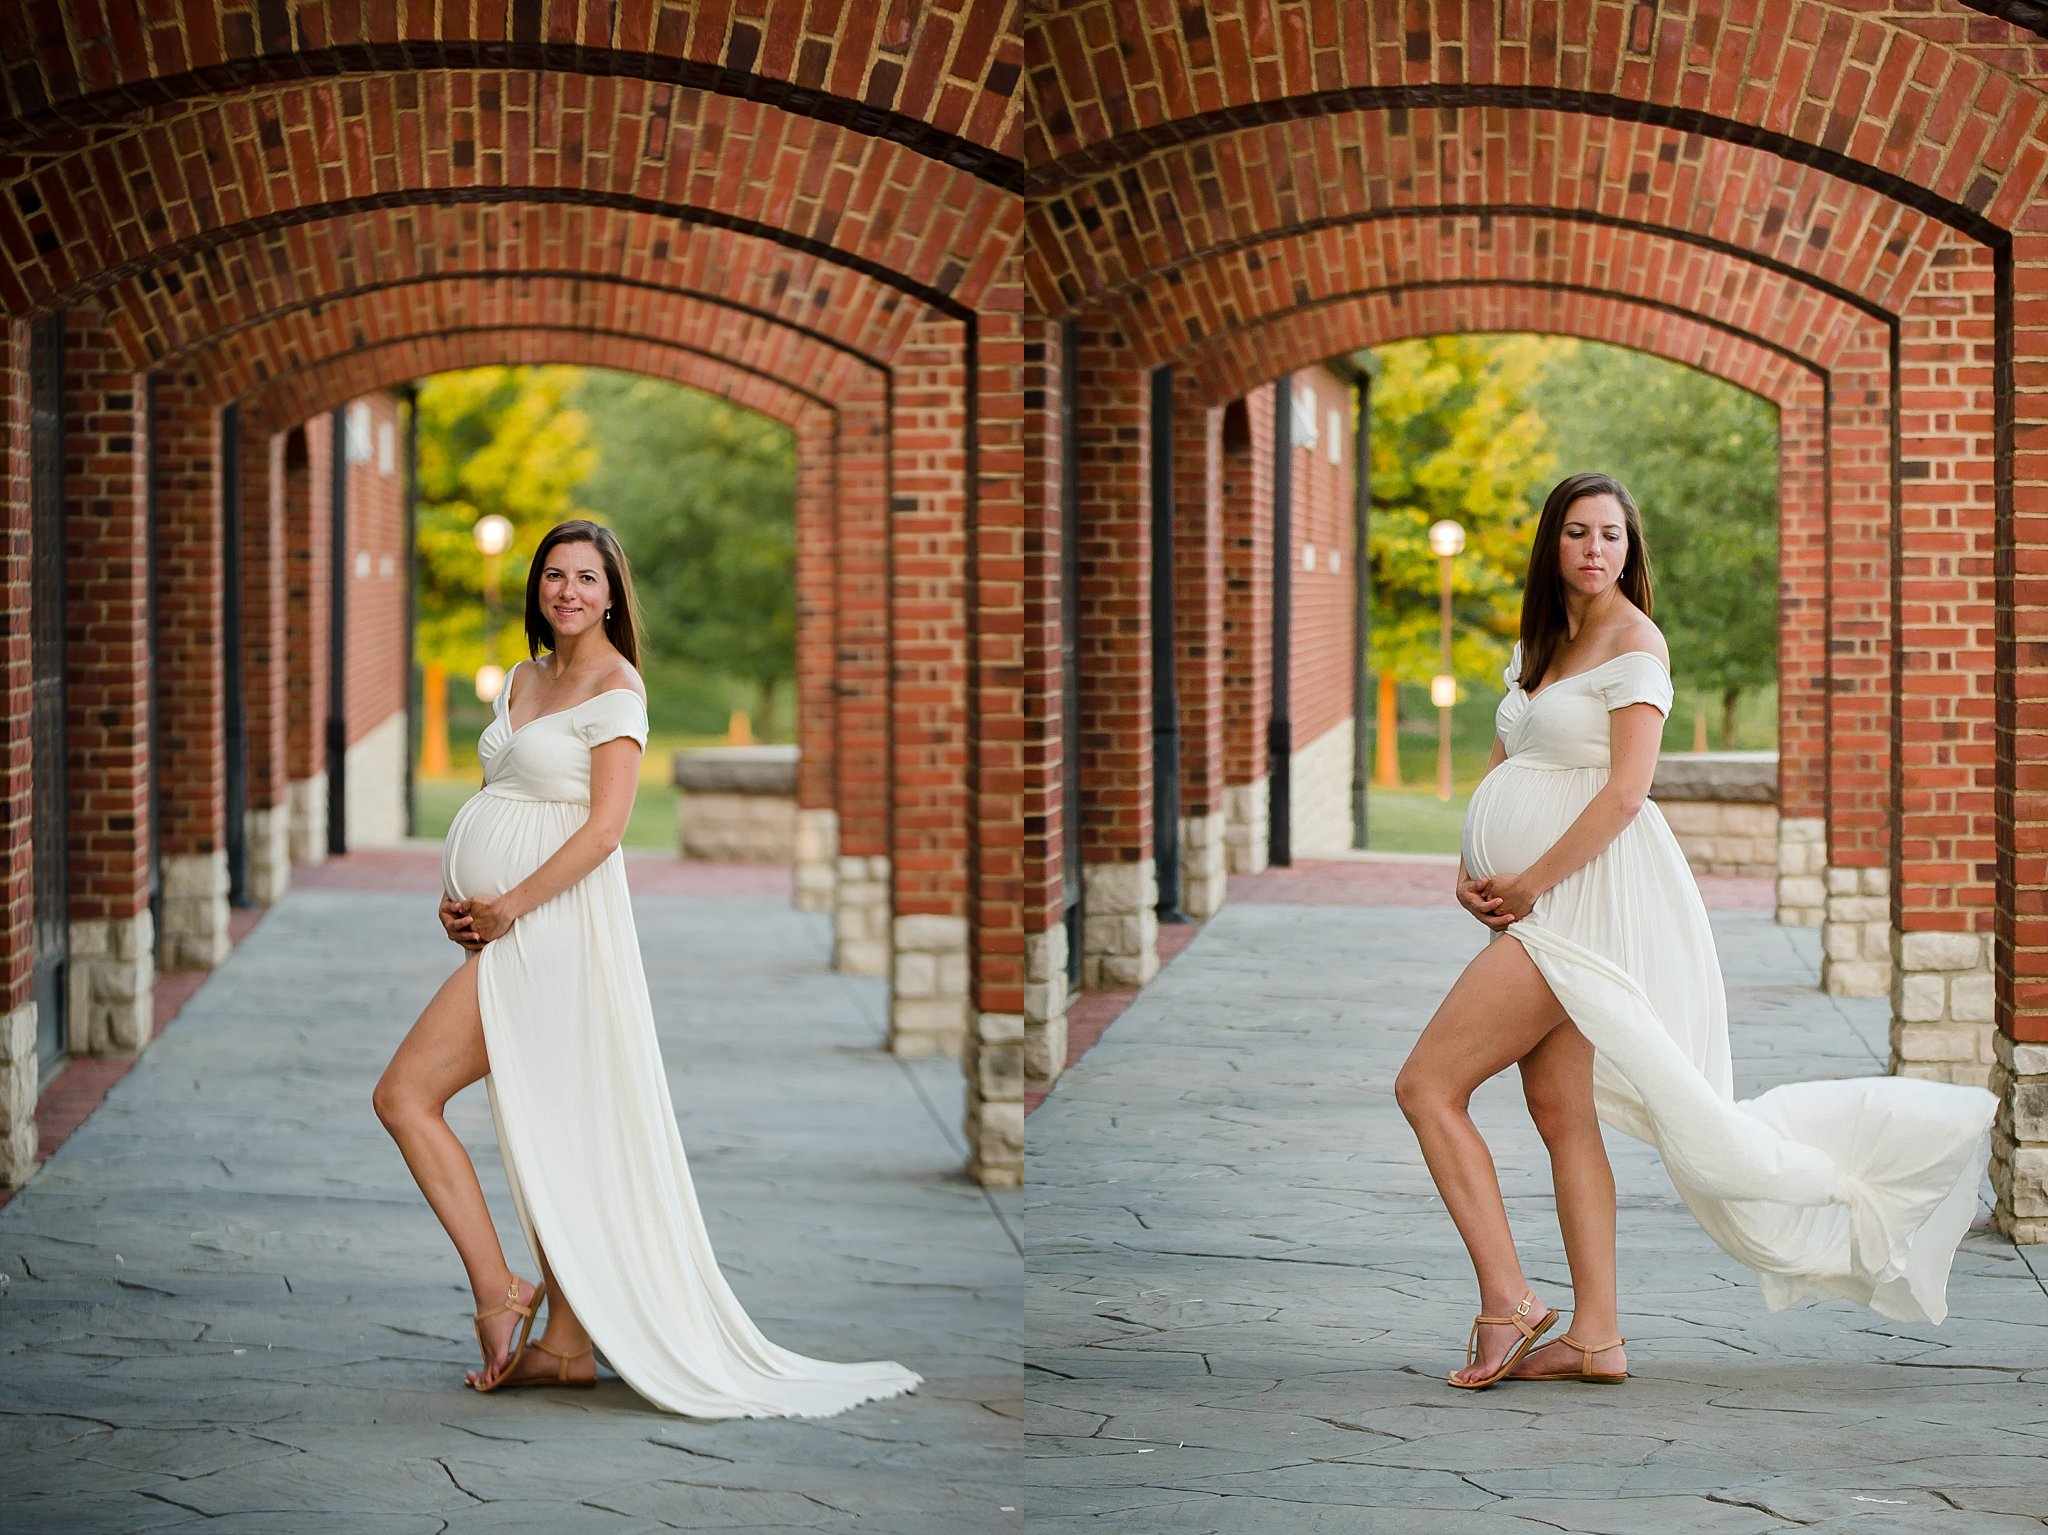 Maternity Photographer in New Albany, Ohio